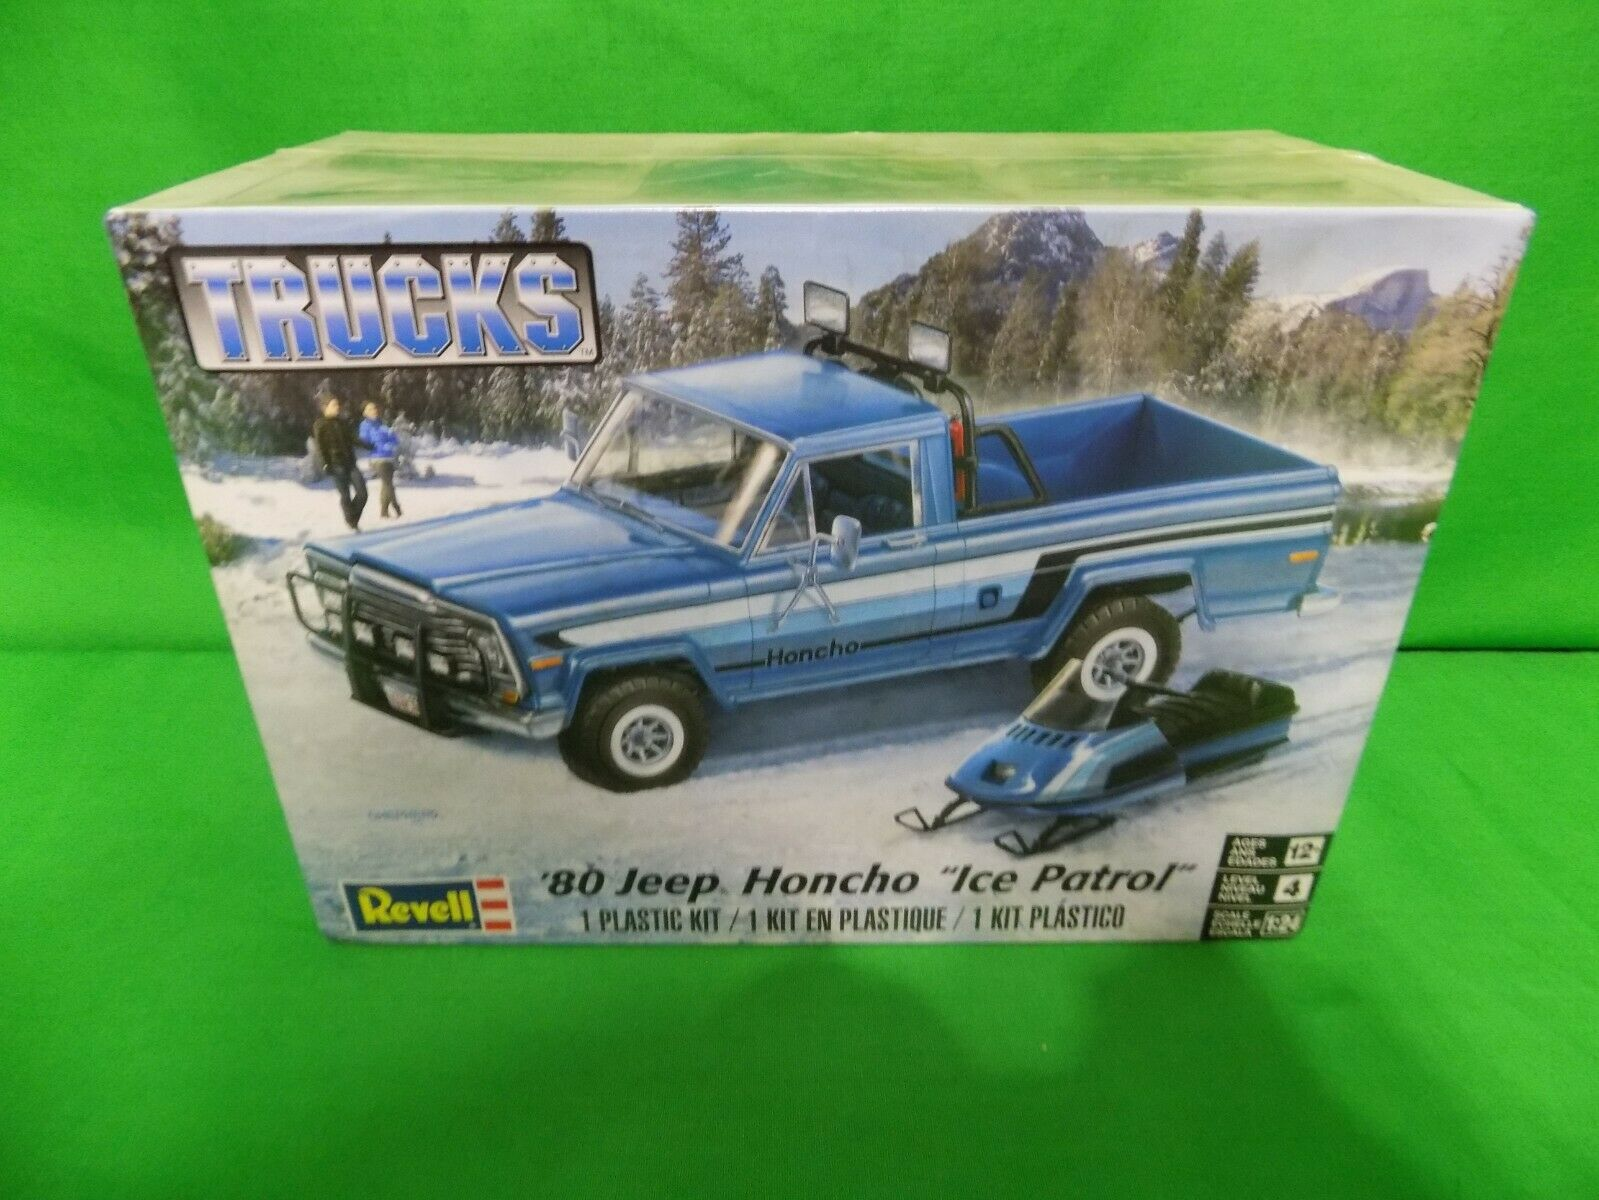 REVELL  '80 JEEP HONCHO  ICE PATROL  MODEL KIT 1 24 SCALE New Sealed